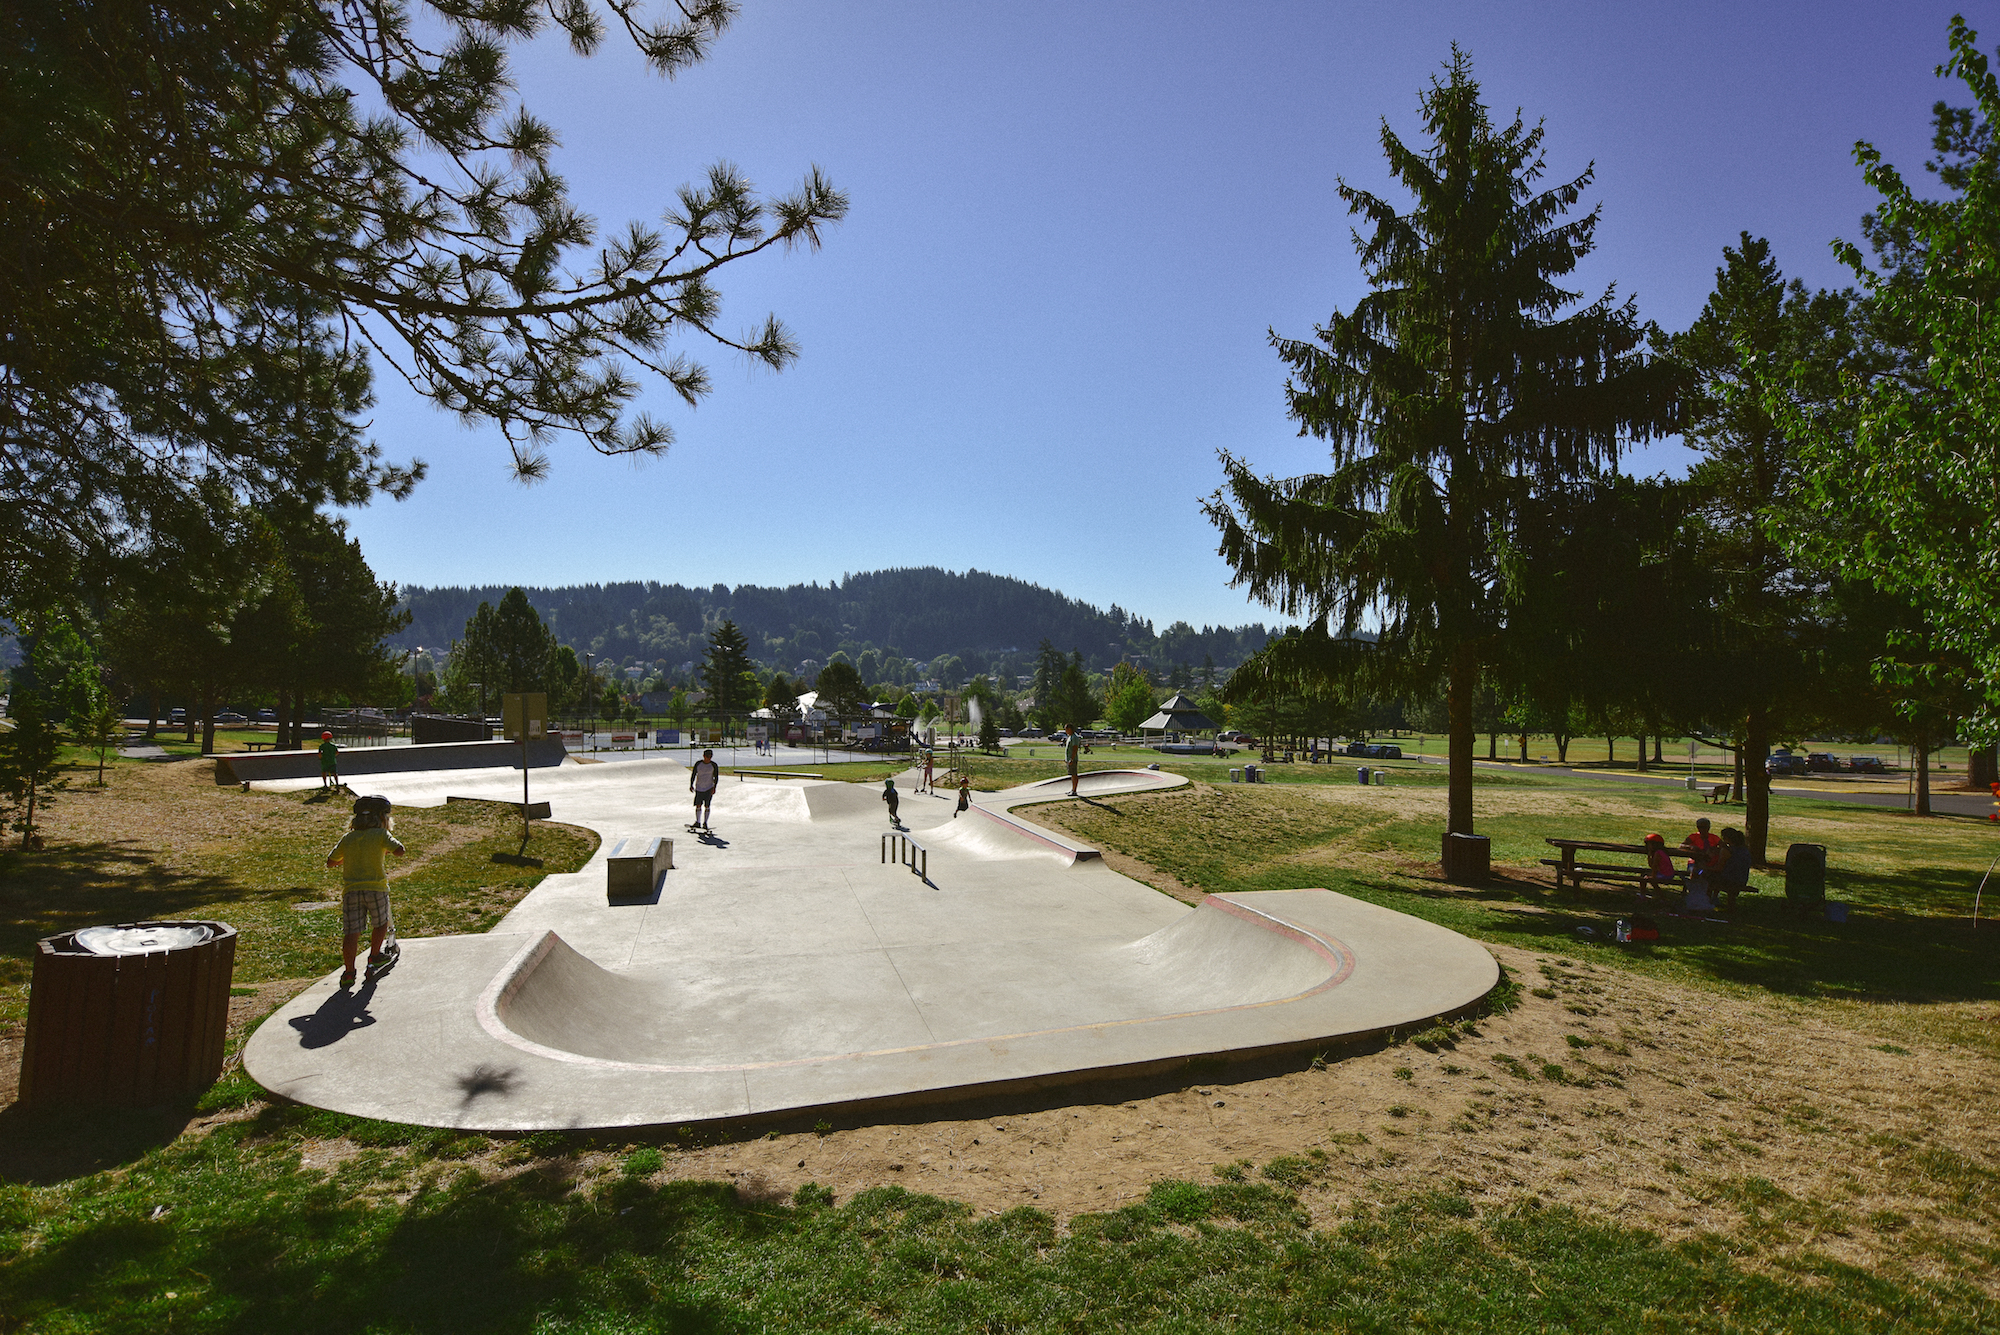 Happy Valley Skate Park